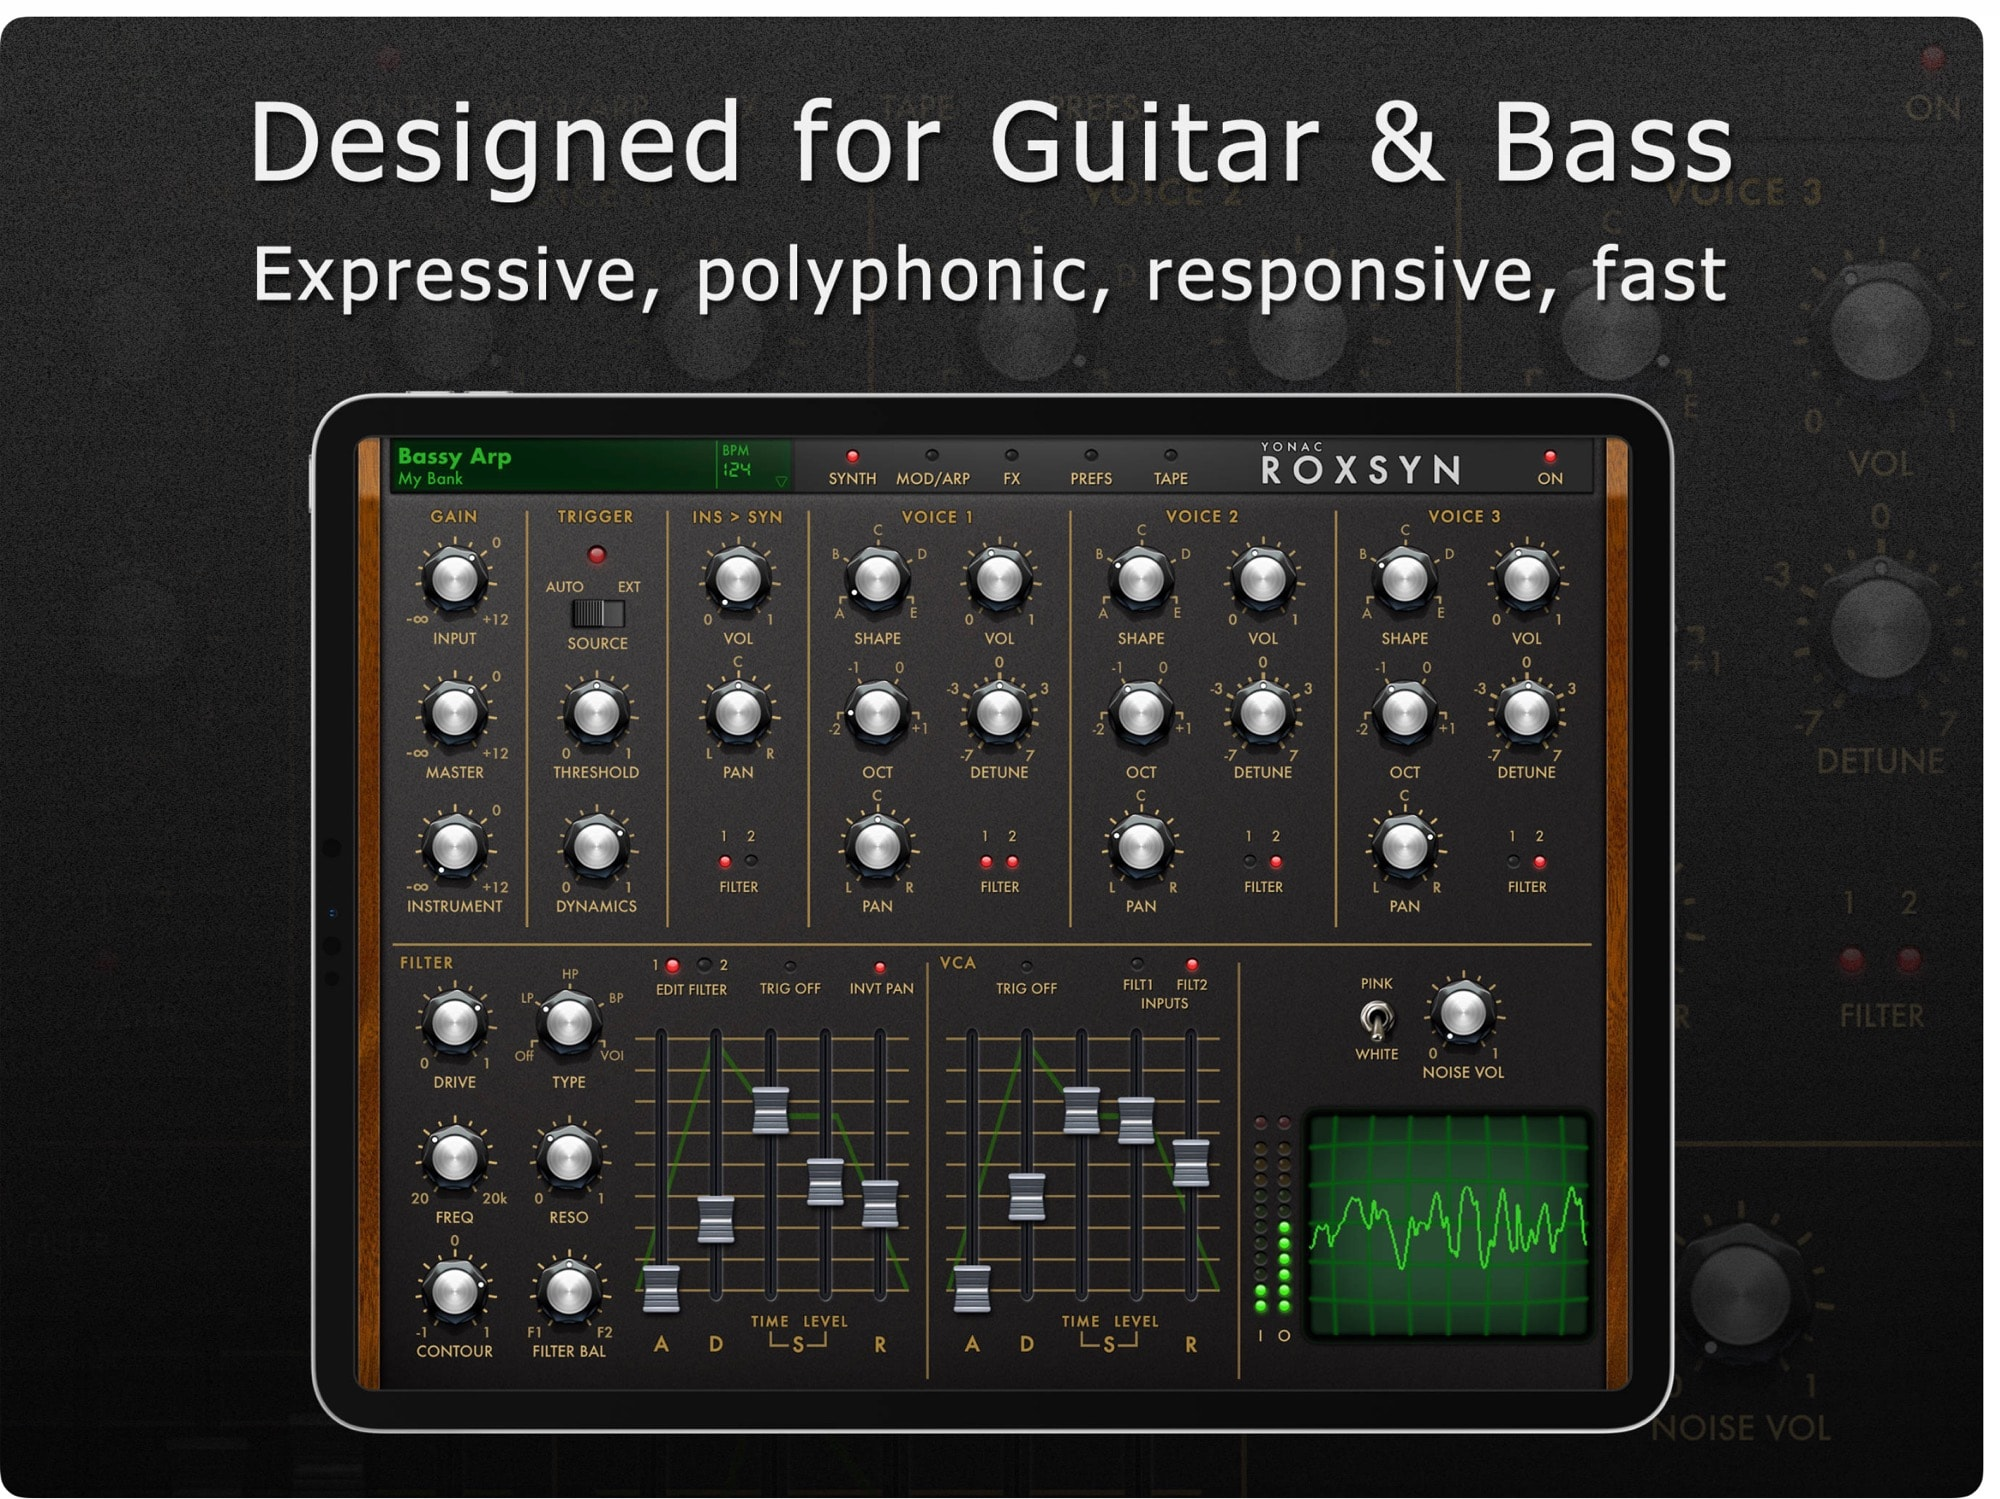 Roxsyn app turns your electric guitar into a synthesizer